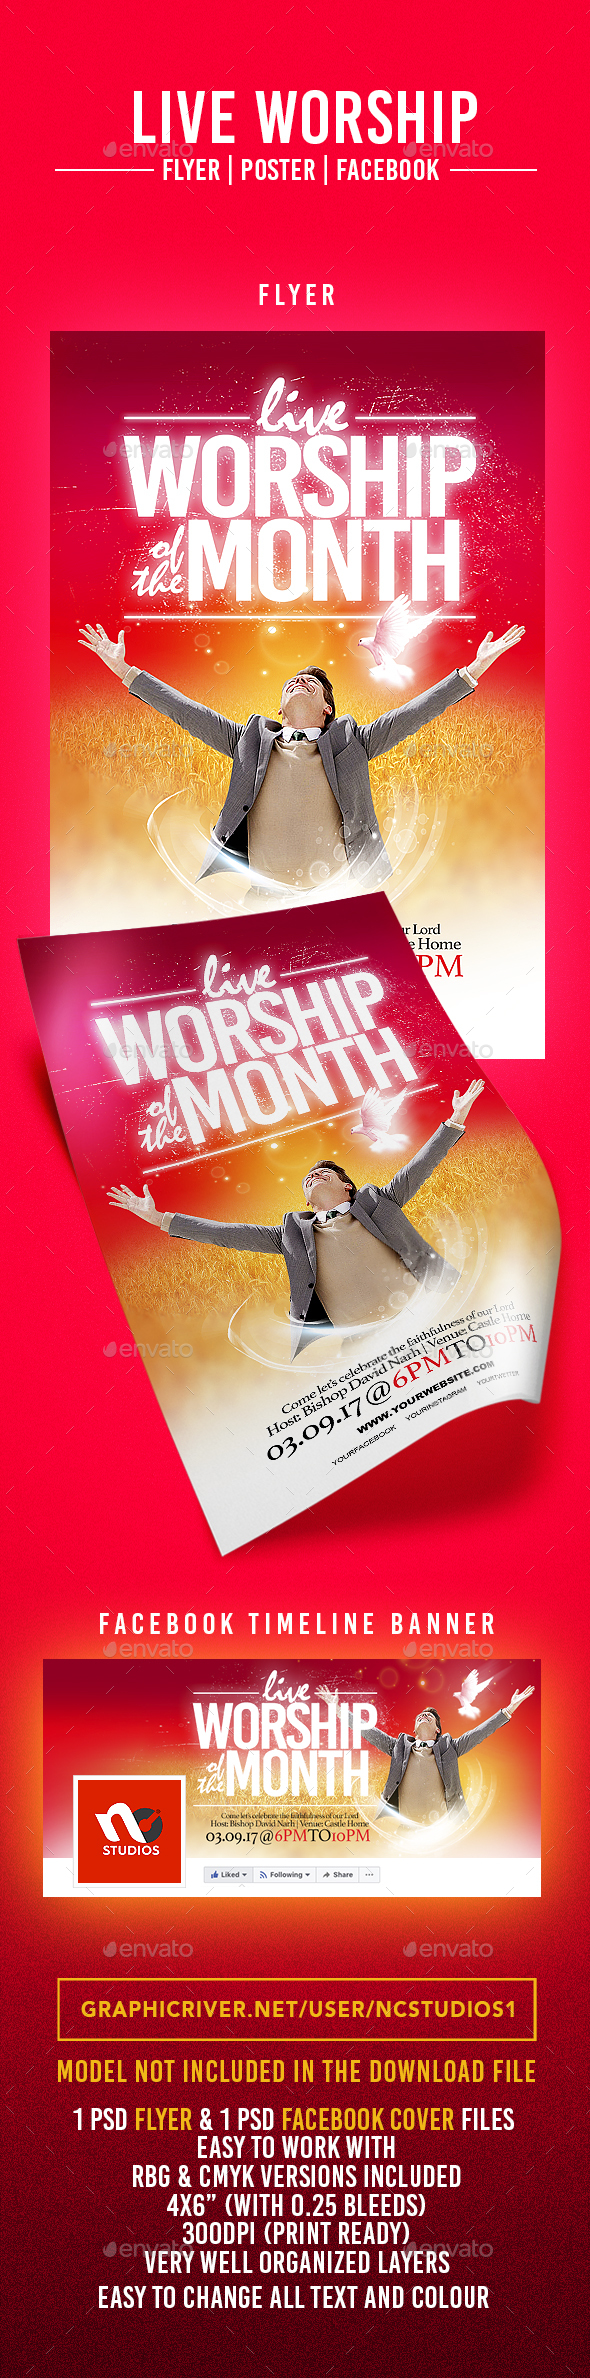 Live Worship Flyer Template - Flyers Print Templates